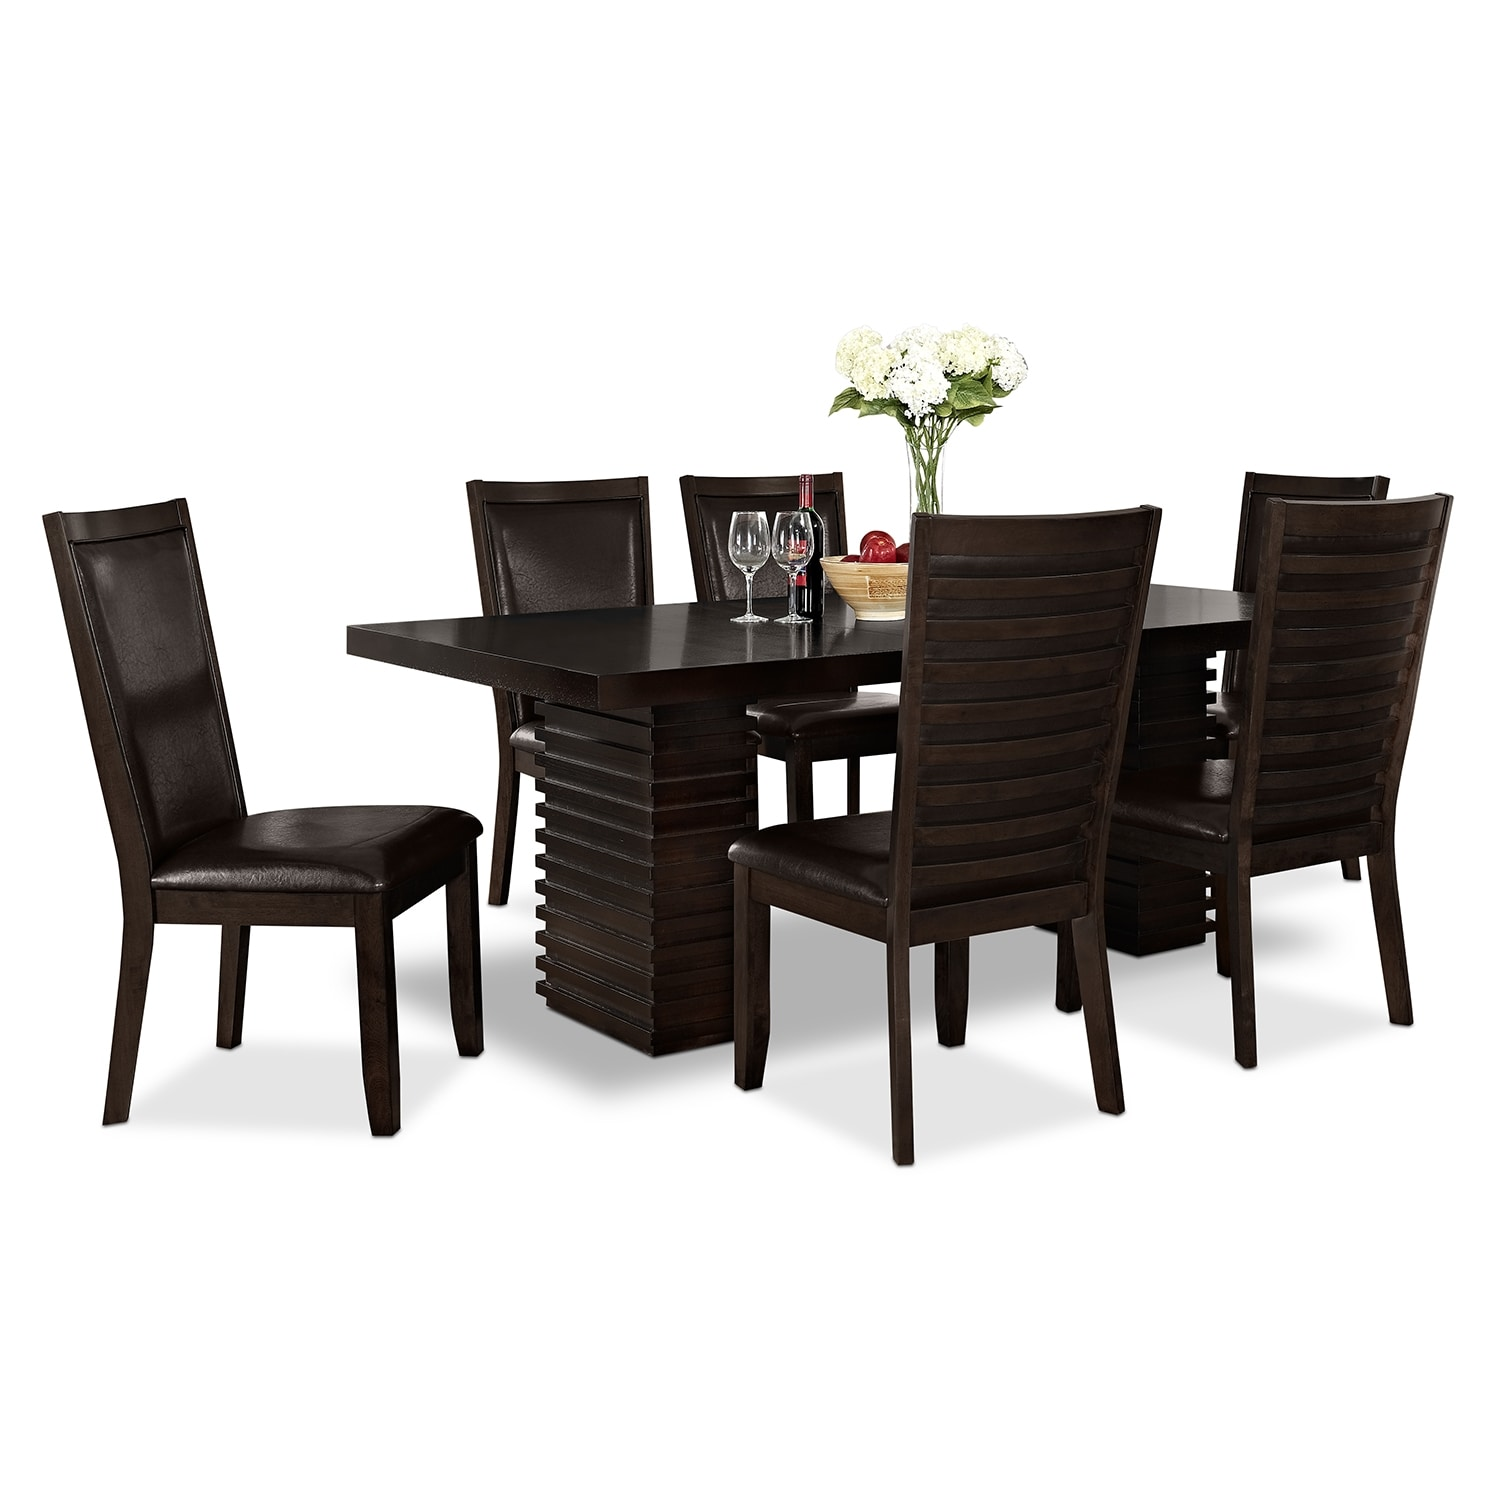 dining room furniture paragon table and 6 chairs merlot and brown